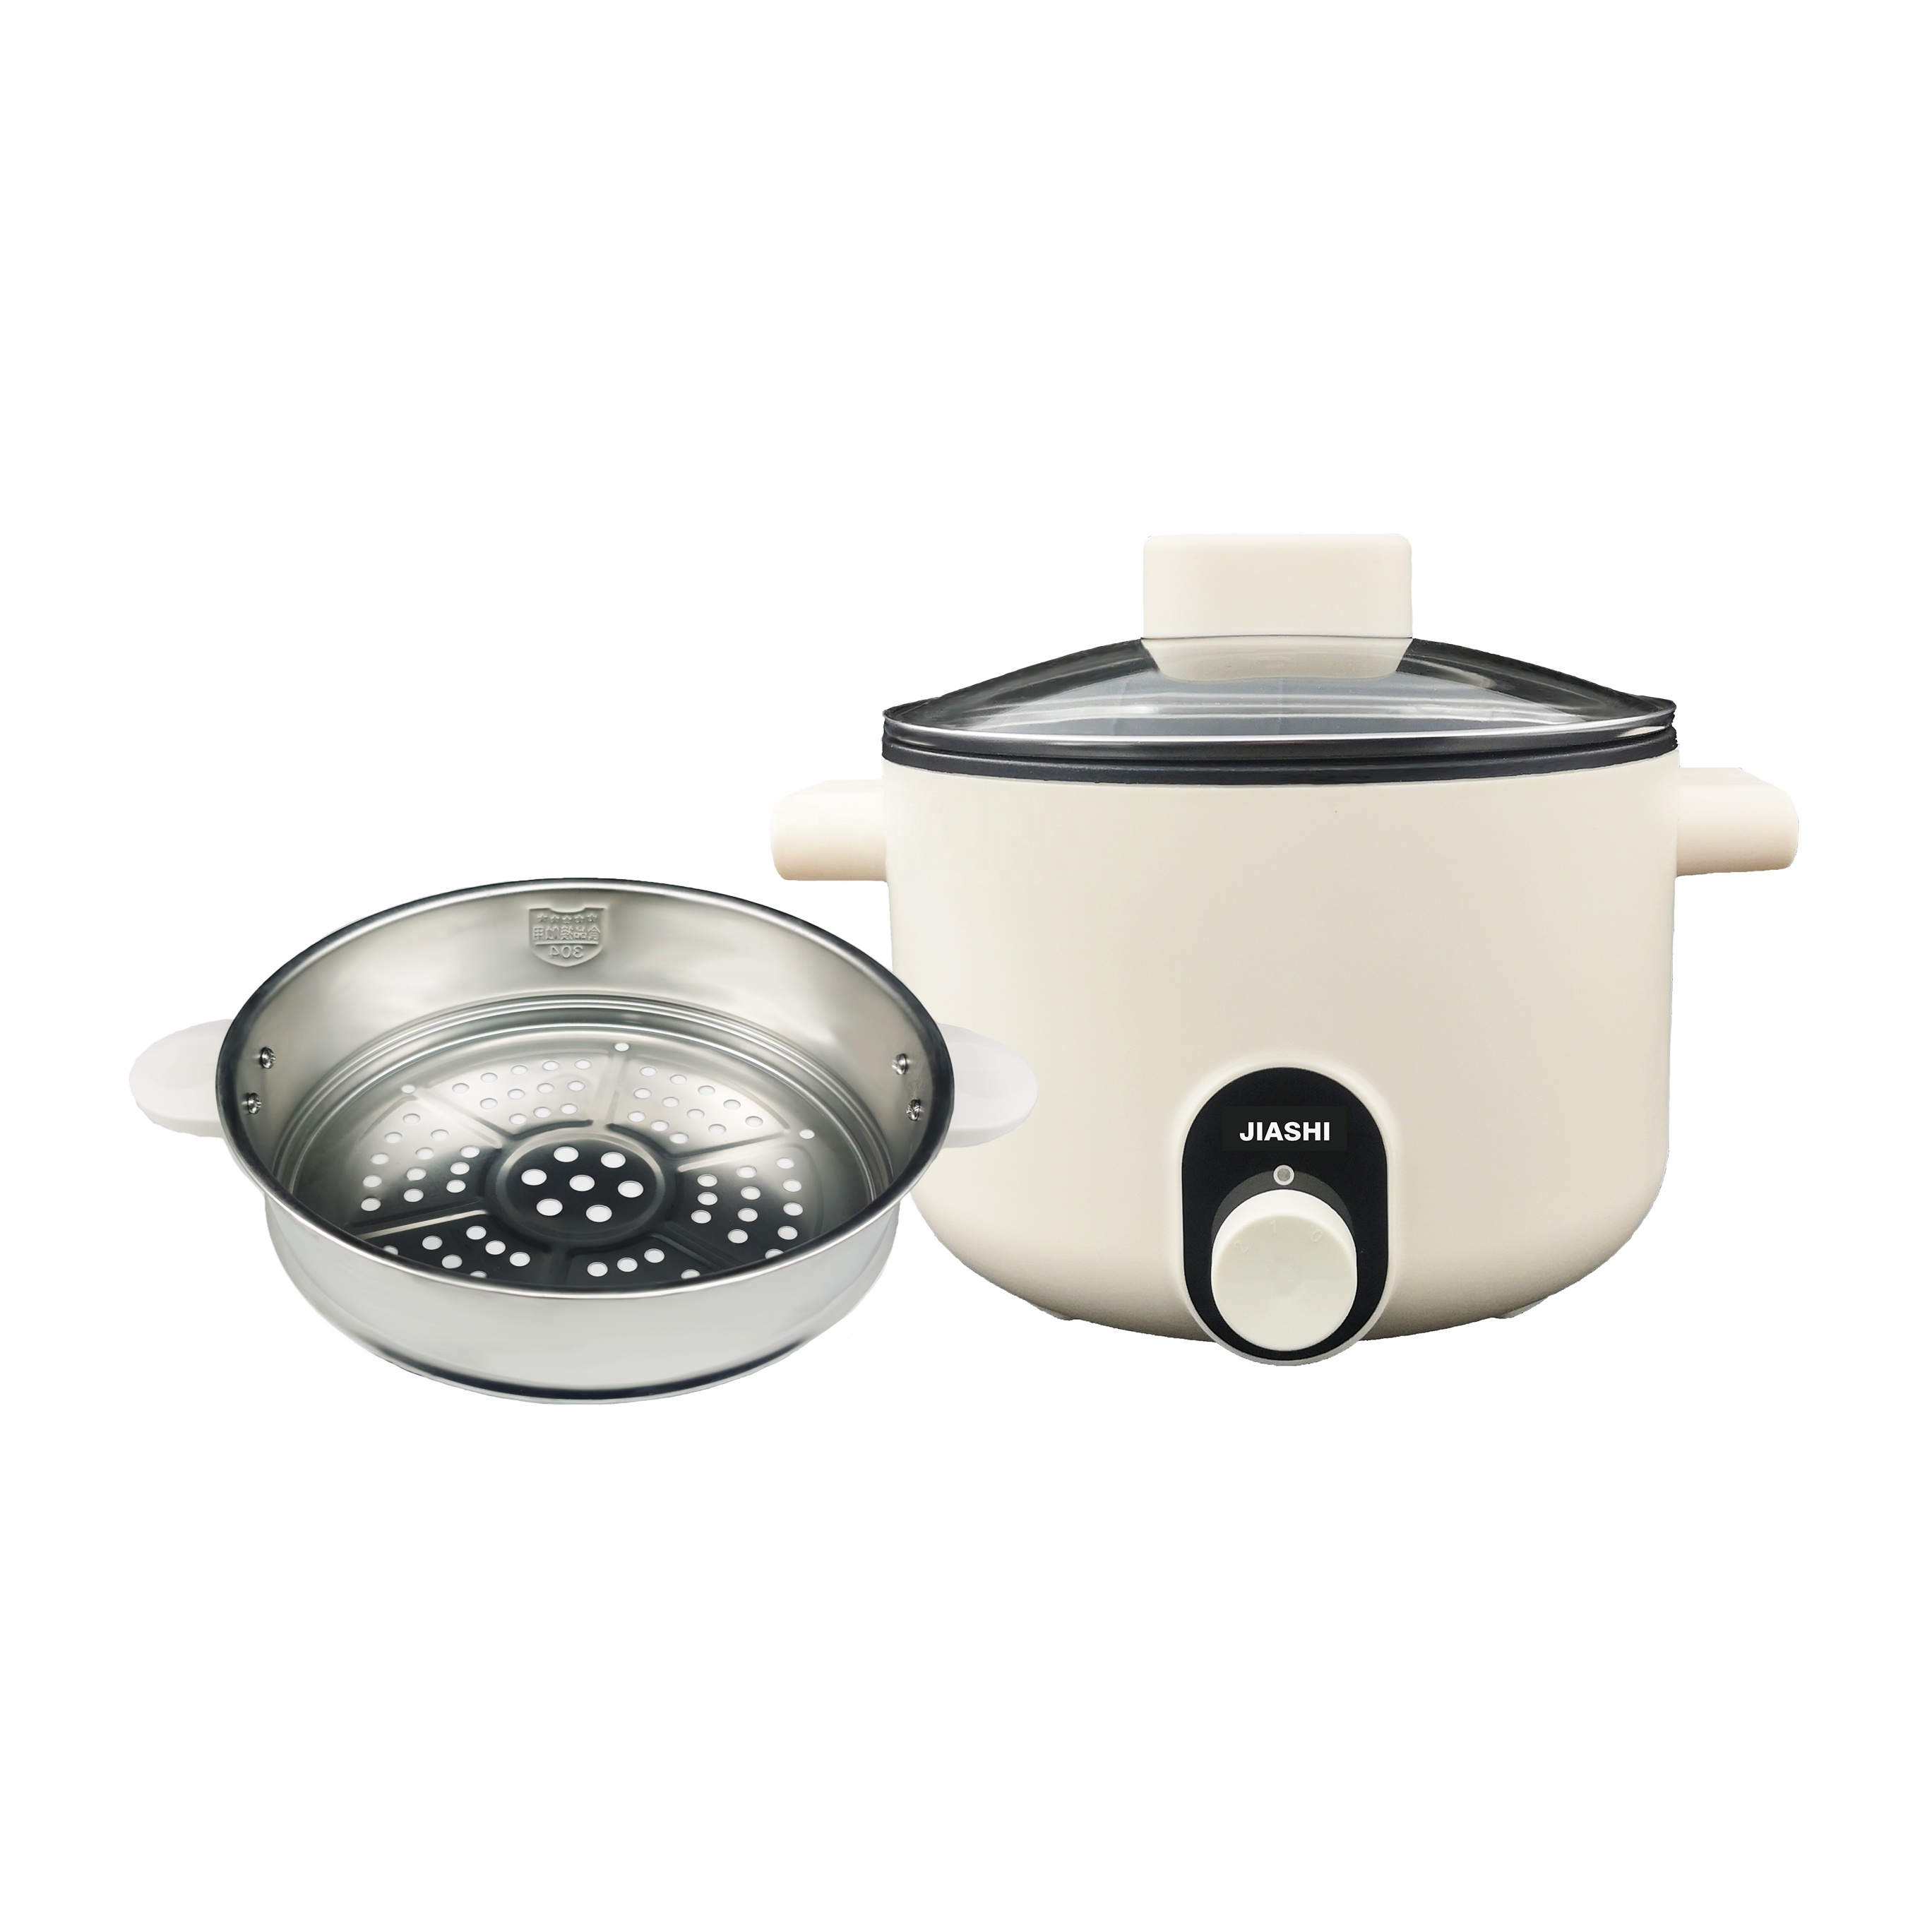 High Quality rotary knob control plastic housing non stick pot electric multi stewing cooking pot